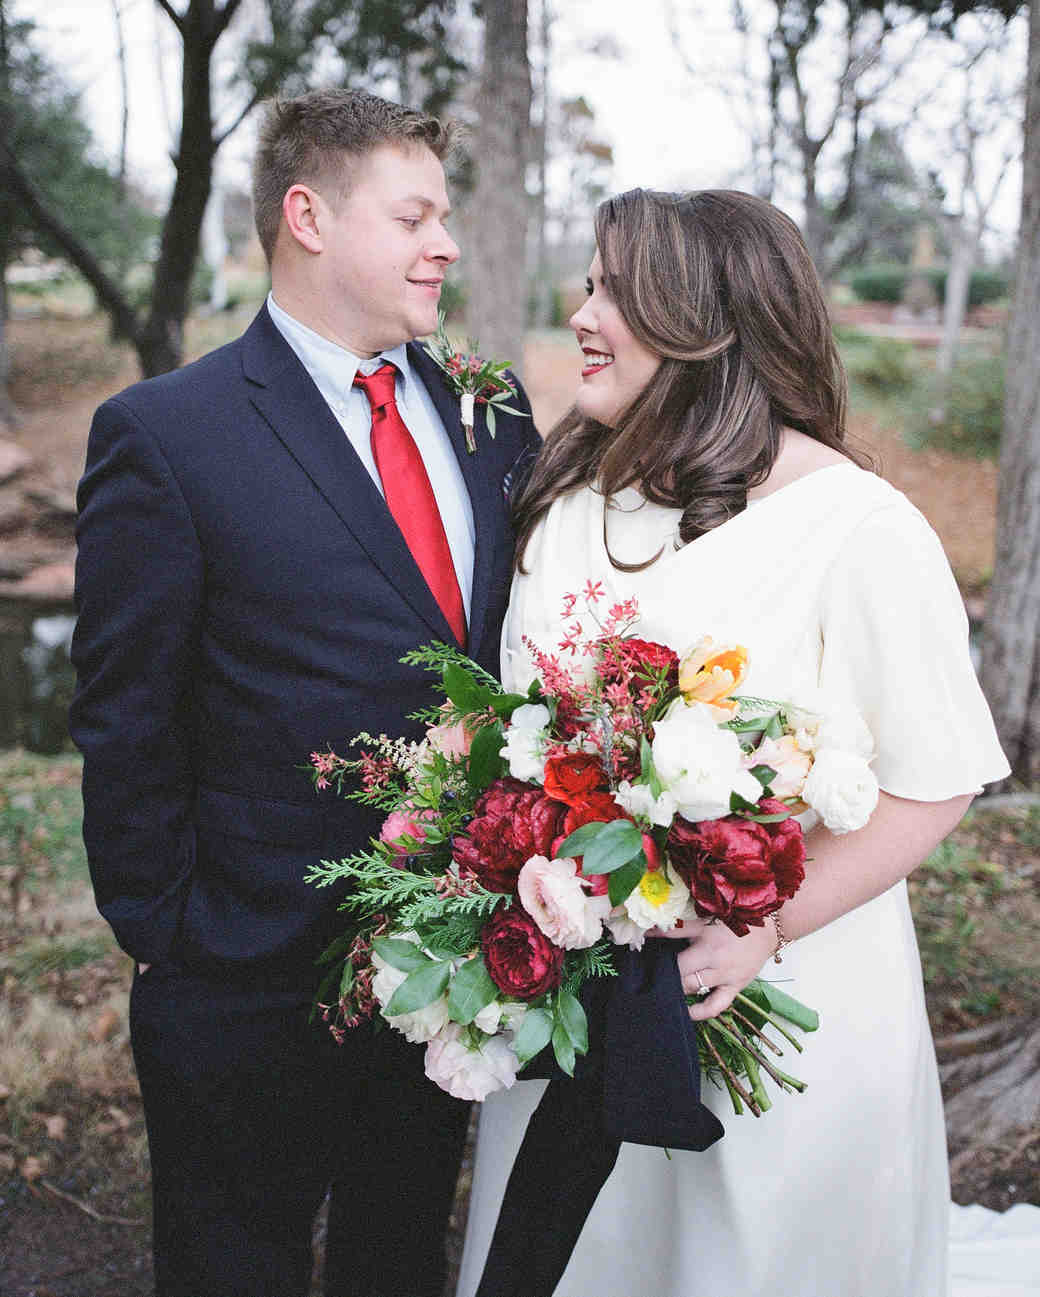 A Preppy, Plaid Winter Wedding in Oklahoma